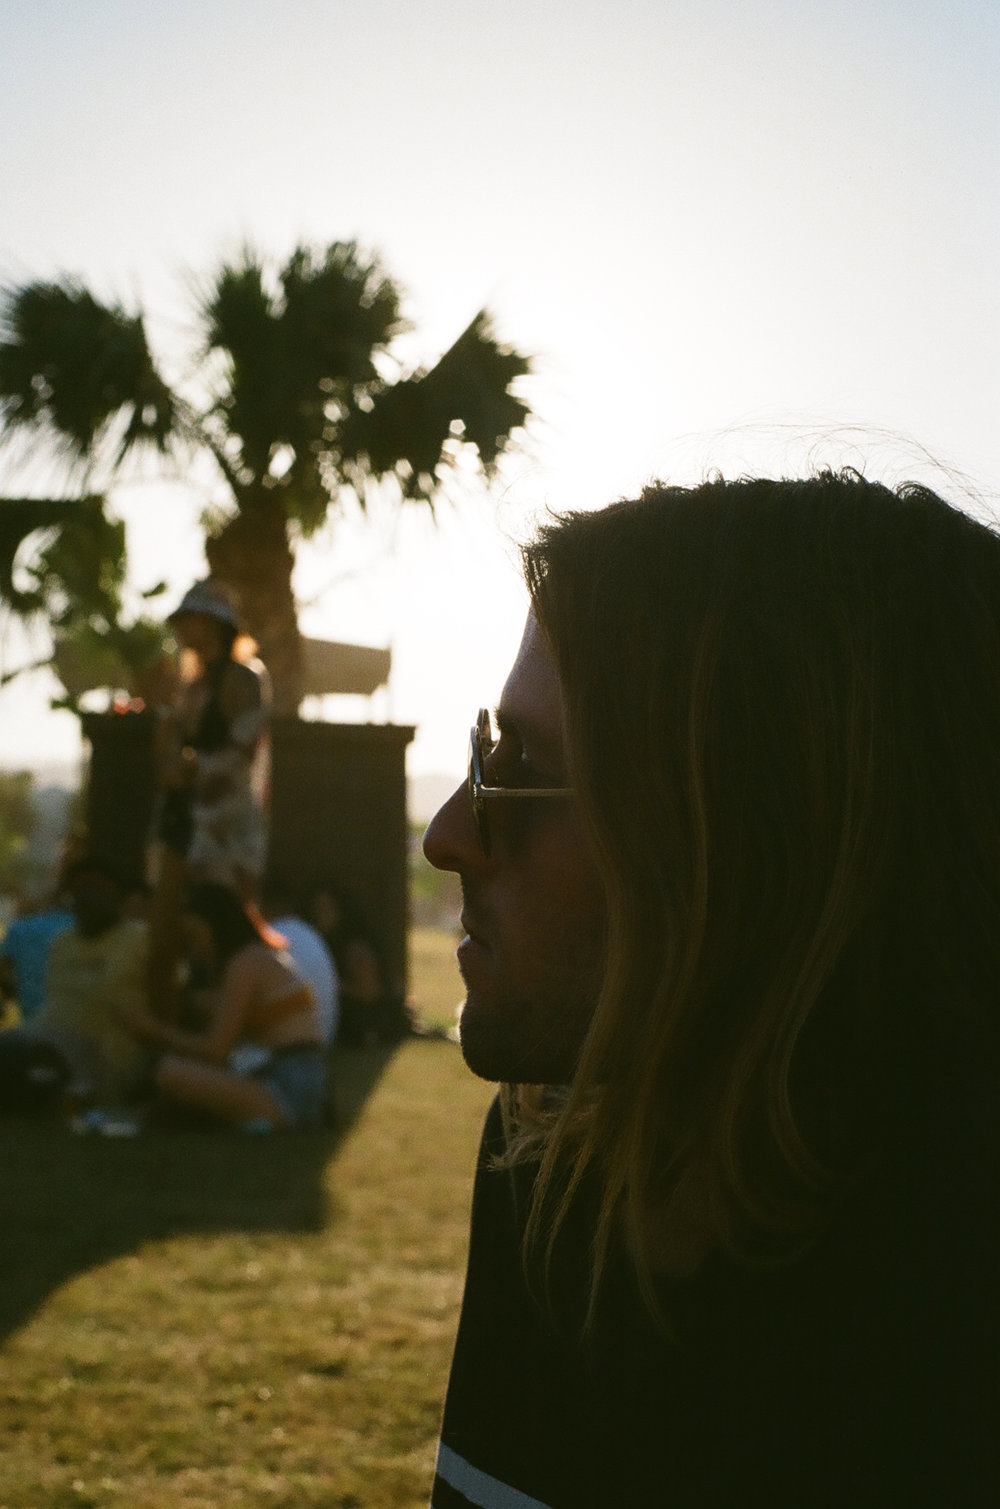 PLNT_MAG_COACHELLA_PHOTOS_18.JPG